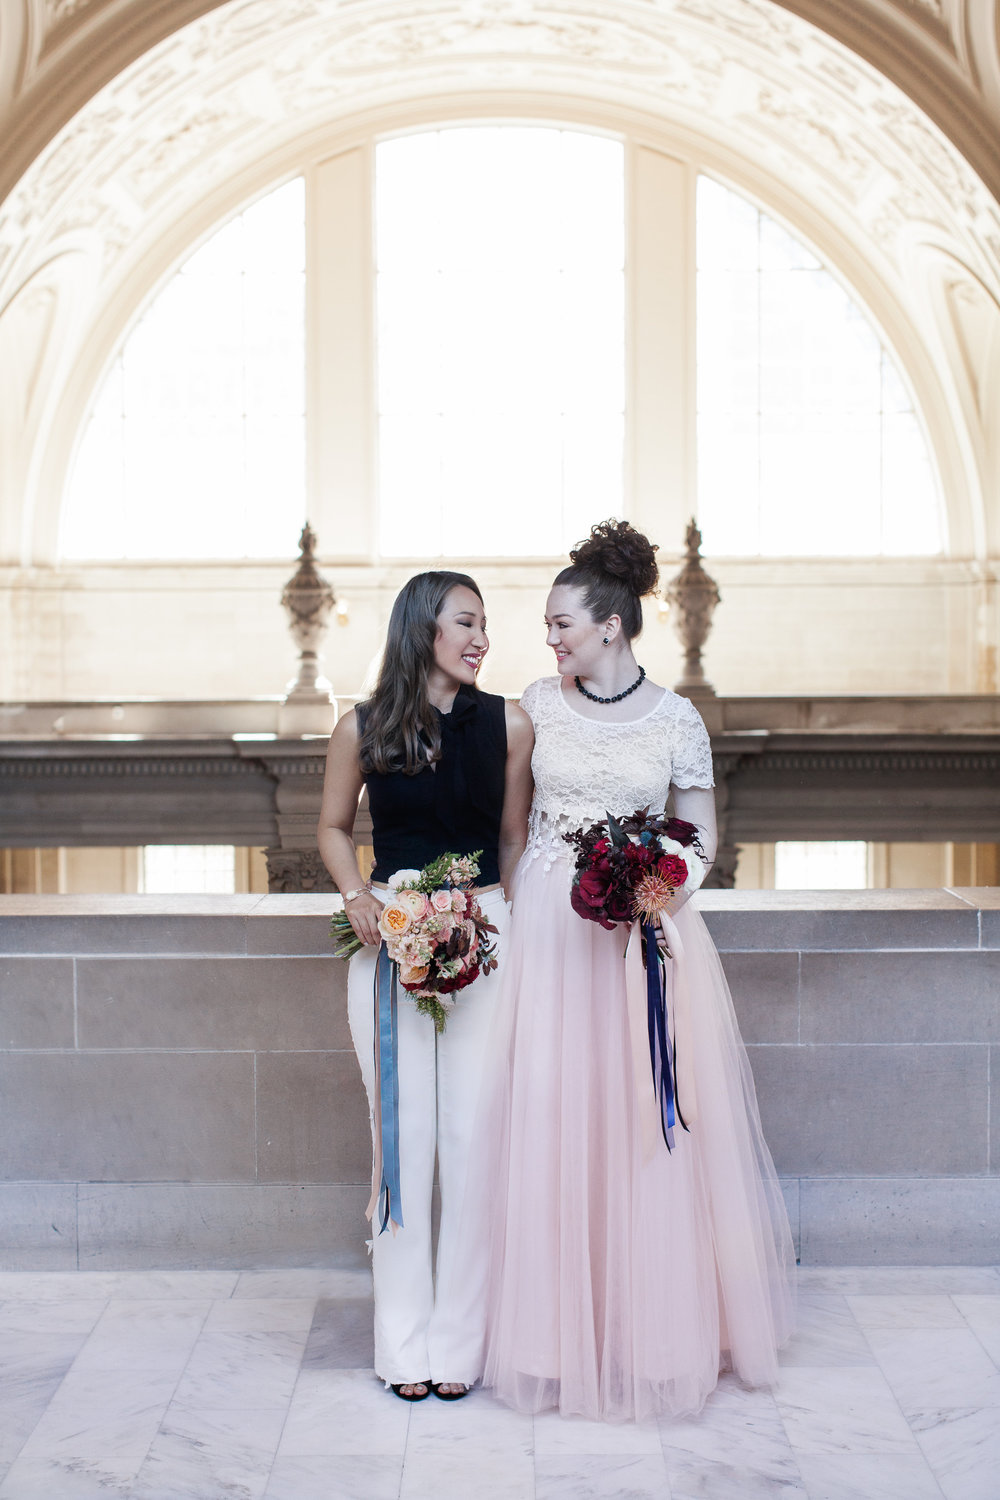 San Francisco City Hall Lesbian LGBTQ Elopement Styled Shoot by Buena Lane Photography